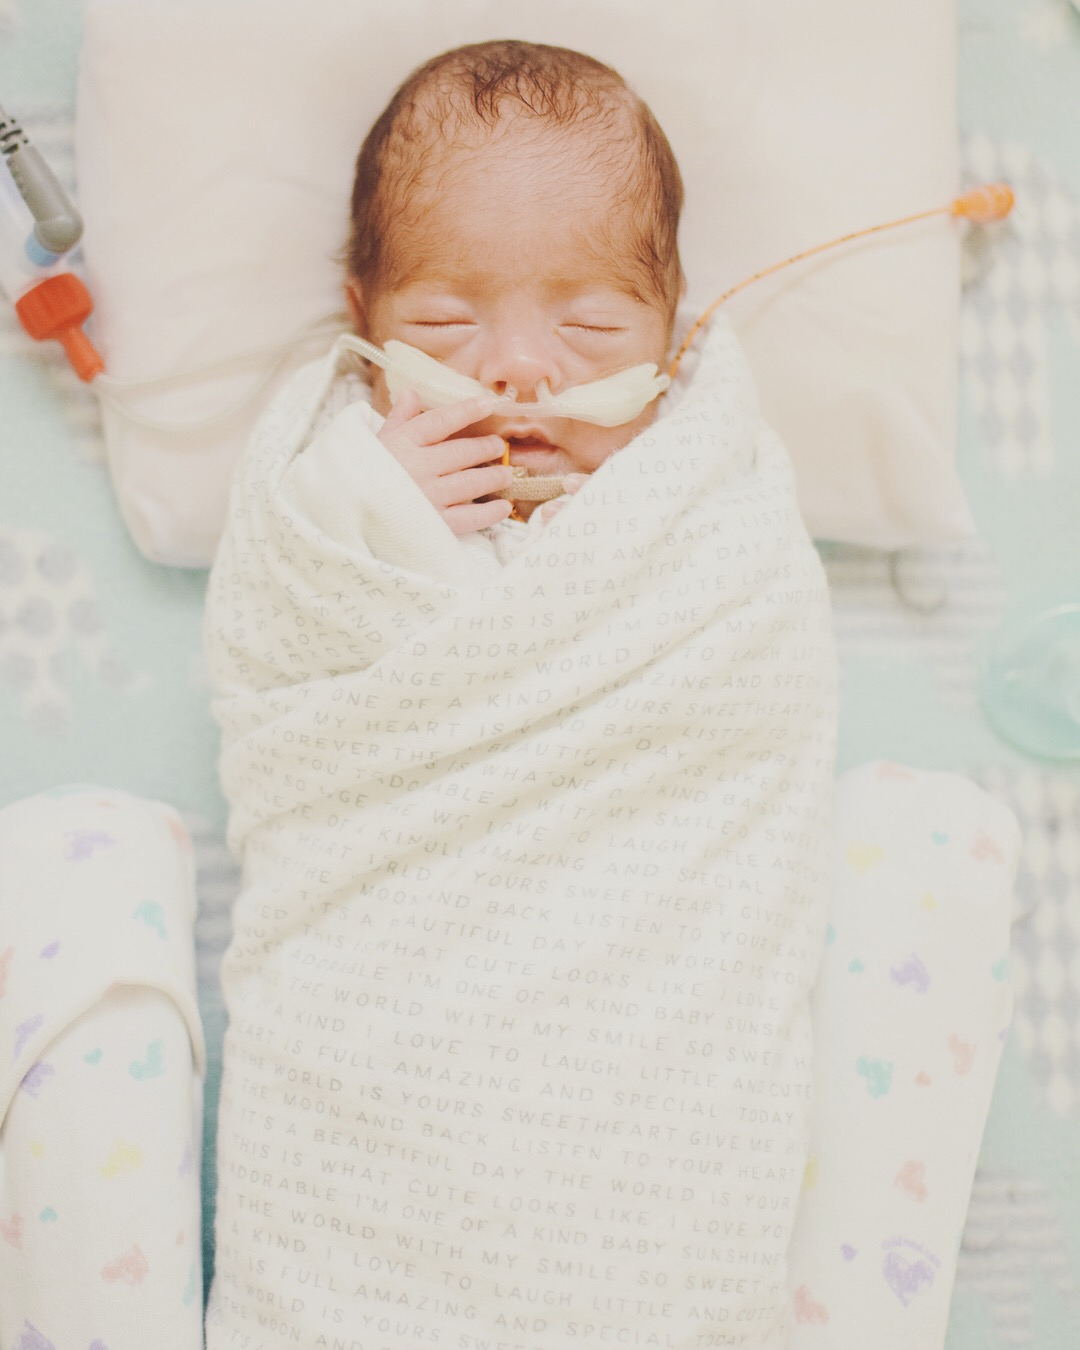 Pumping for Micropreemie | Homestretch